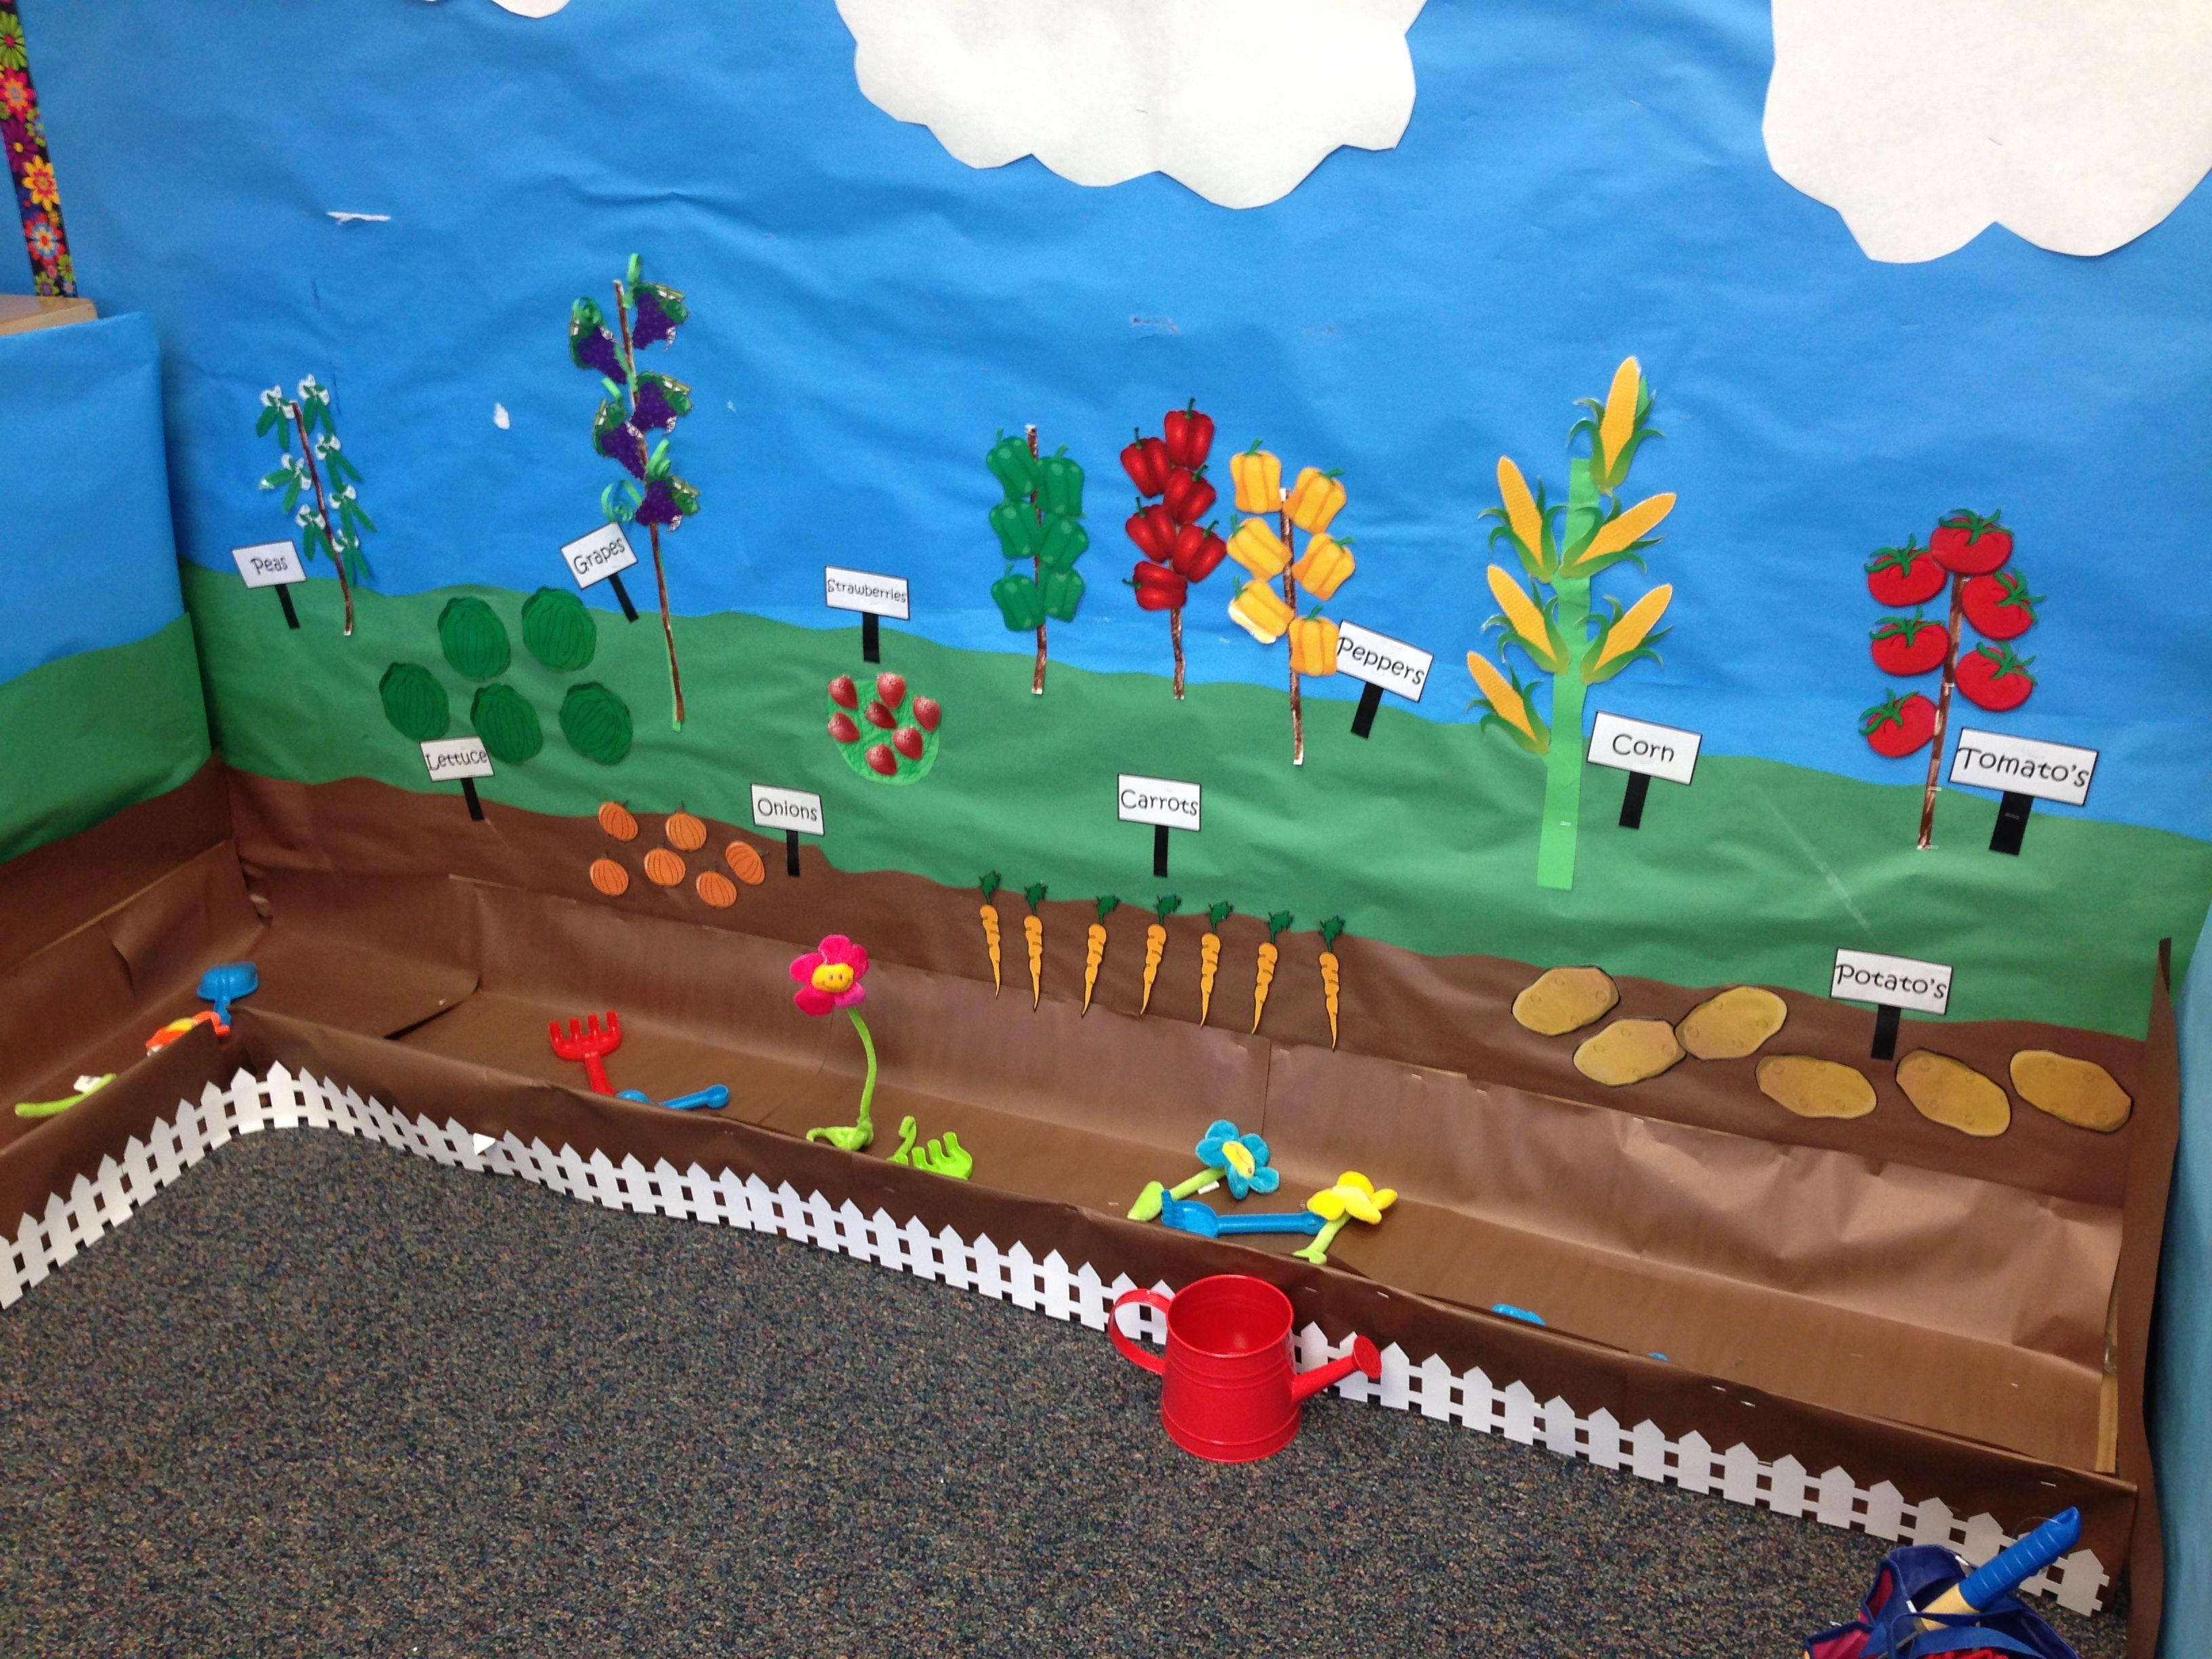 Growing And Changing Farmers Market Garden This Dramatic Play Area Is A Great Way To Teach